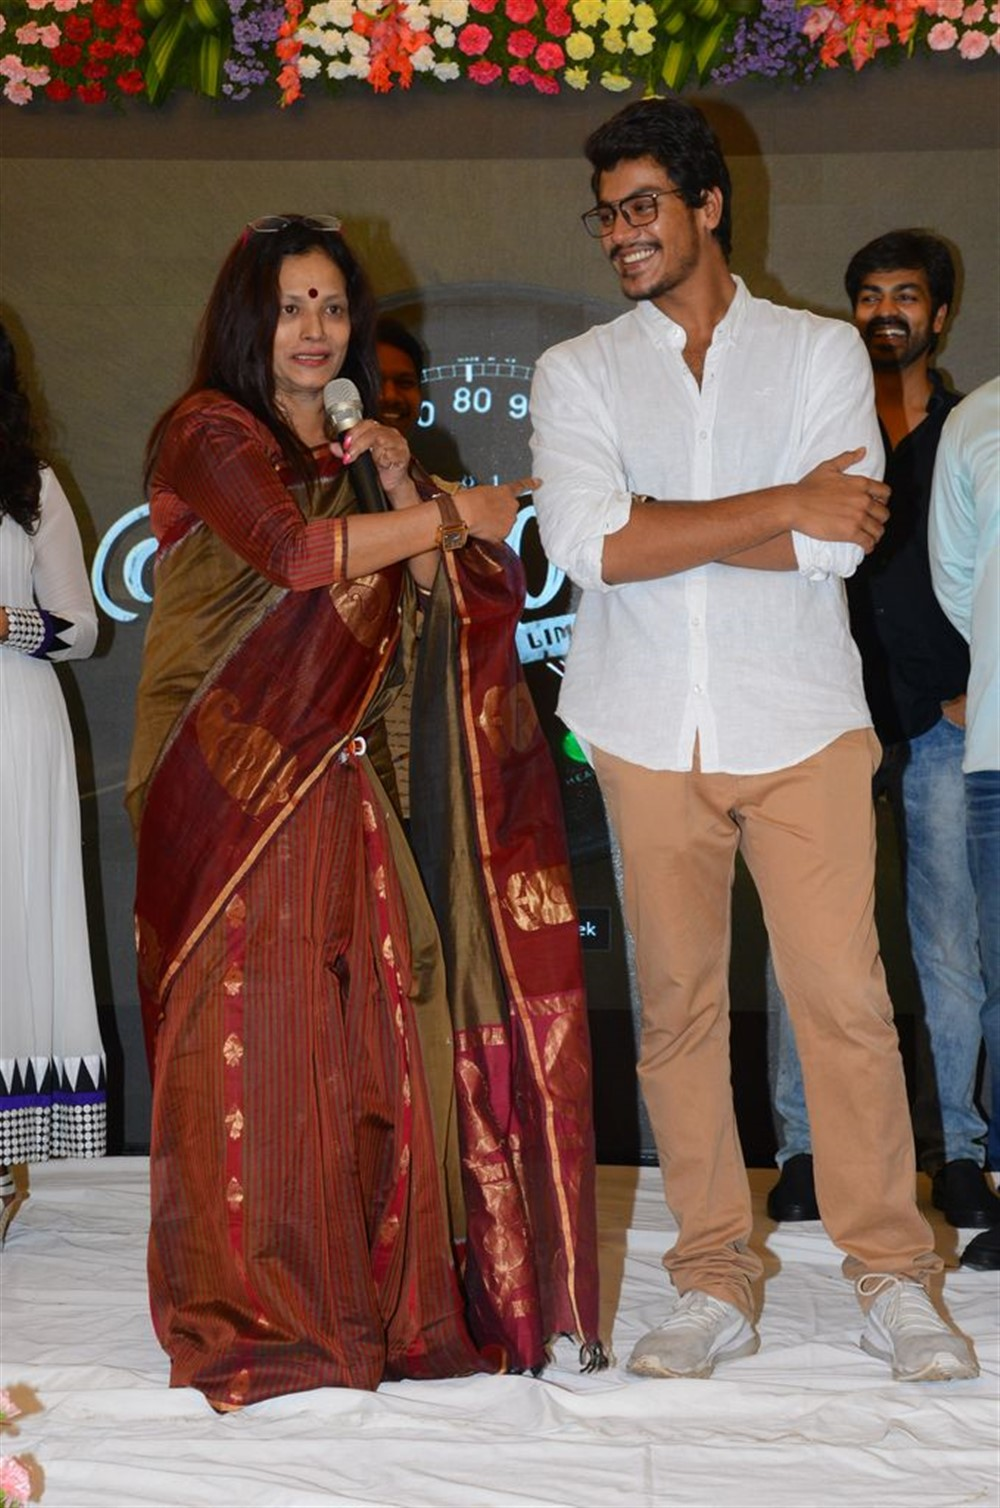 Disco Shanti, Meghamsh Srihari @ Rajdoot Movie Trailer Launch Stills